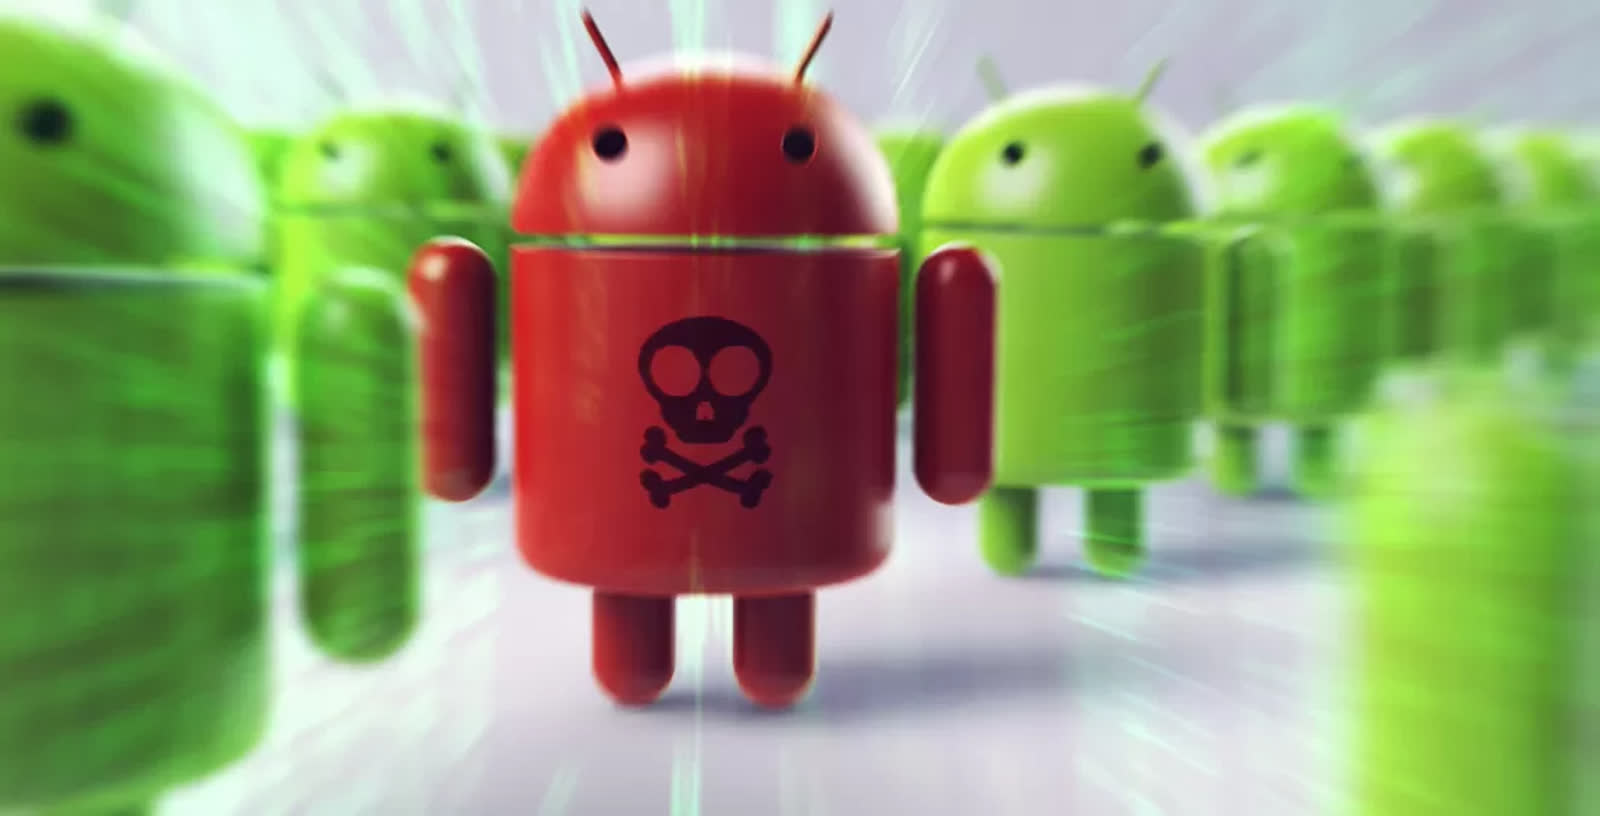 Android malware on the rise, Google's OS is more interesting to cybercriminals than Apple iOS